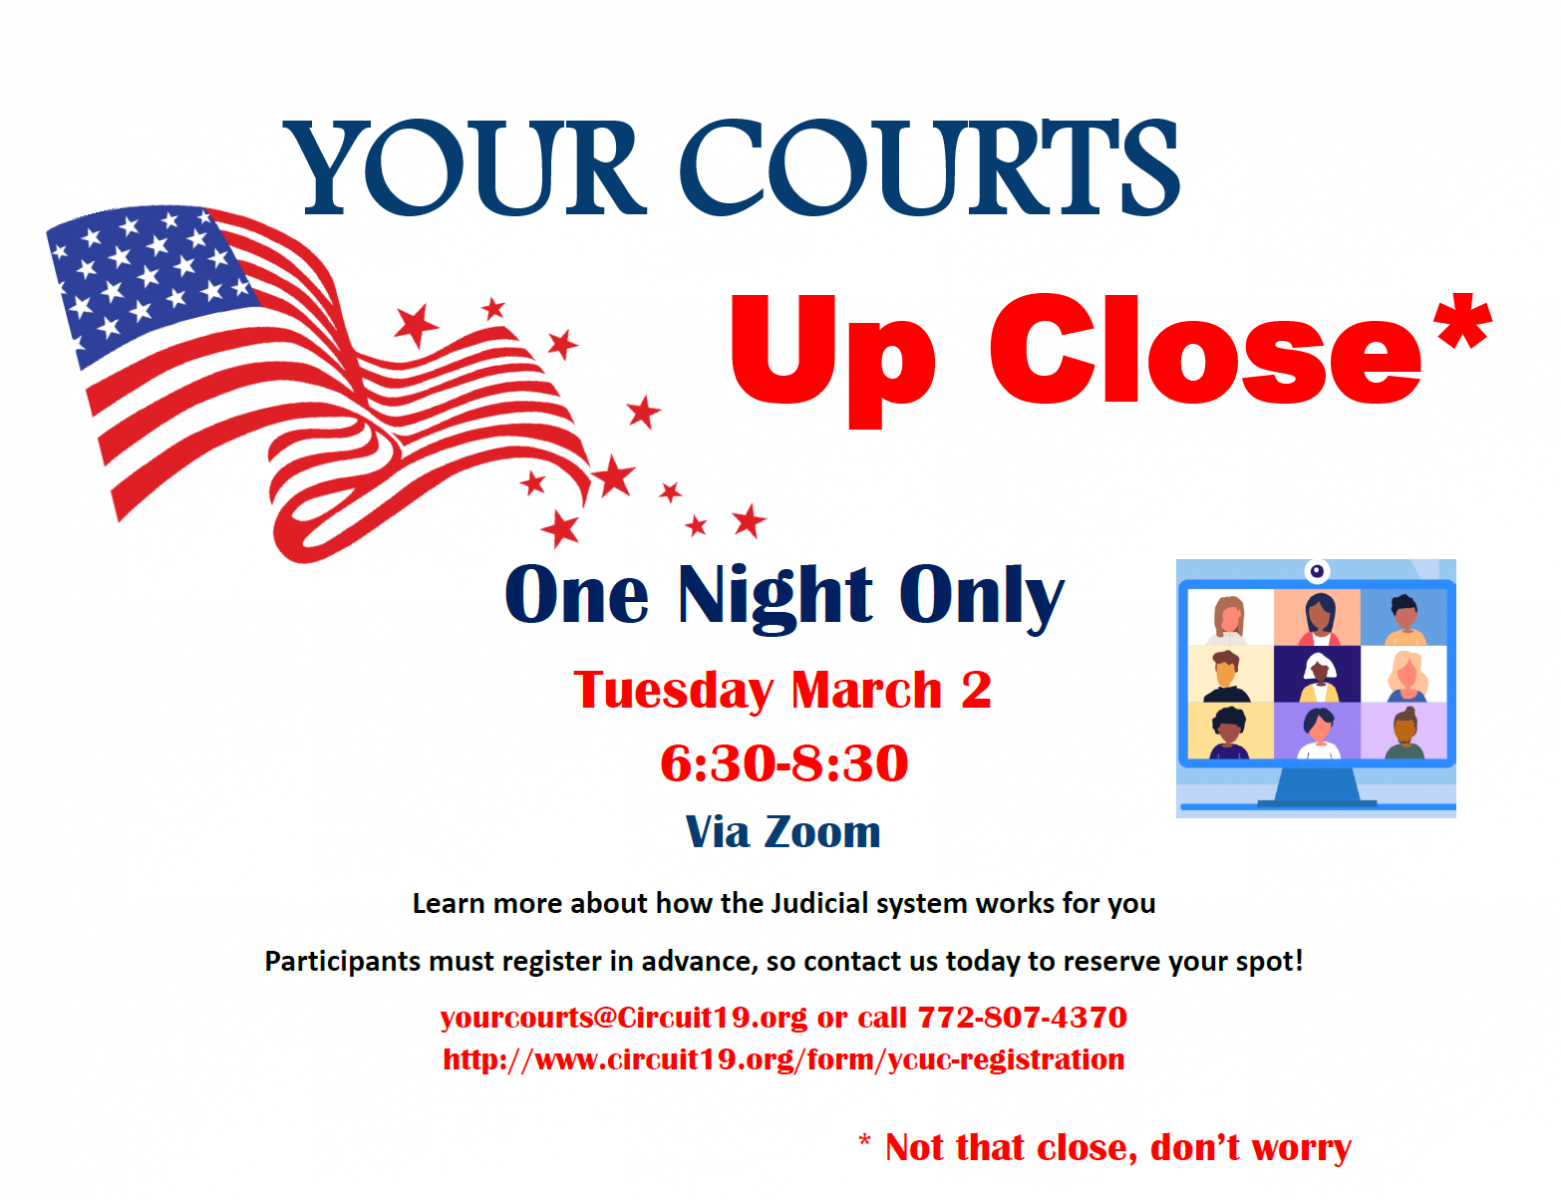 New for this year, Your Courts Up Close will be holding a One Night Only Zoom event on March 2nd